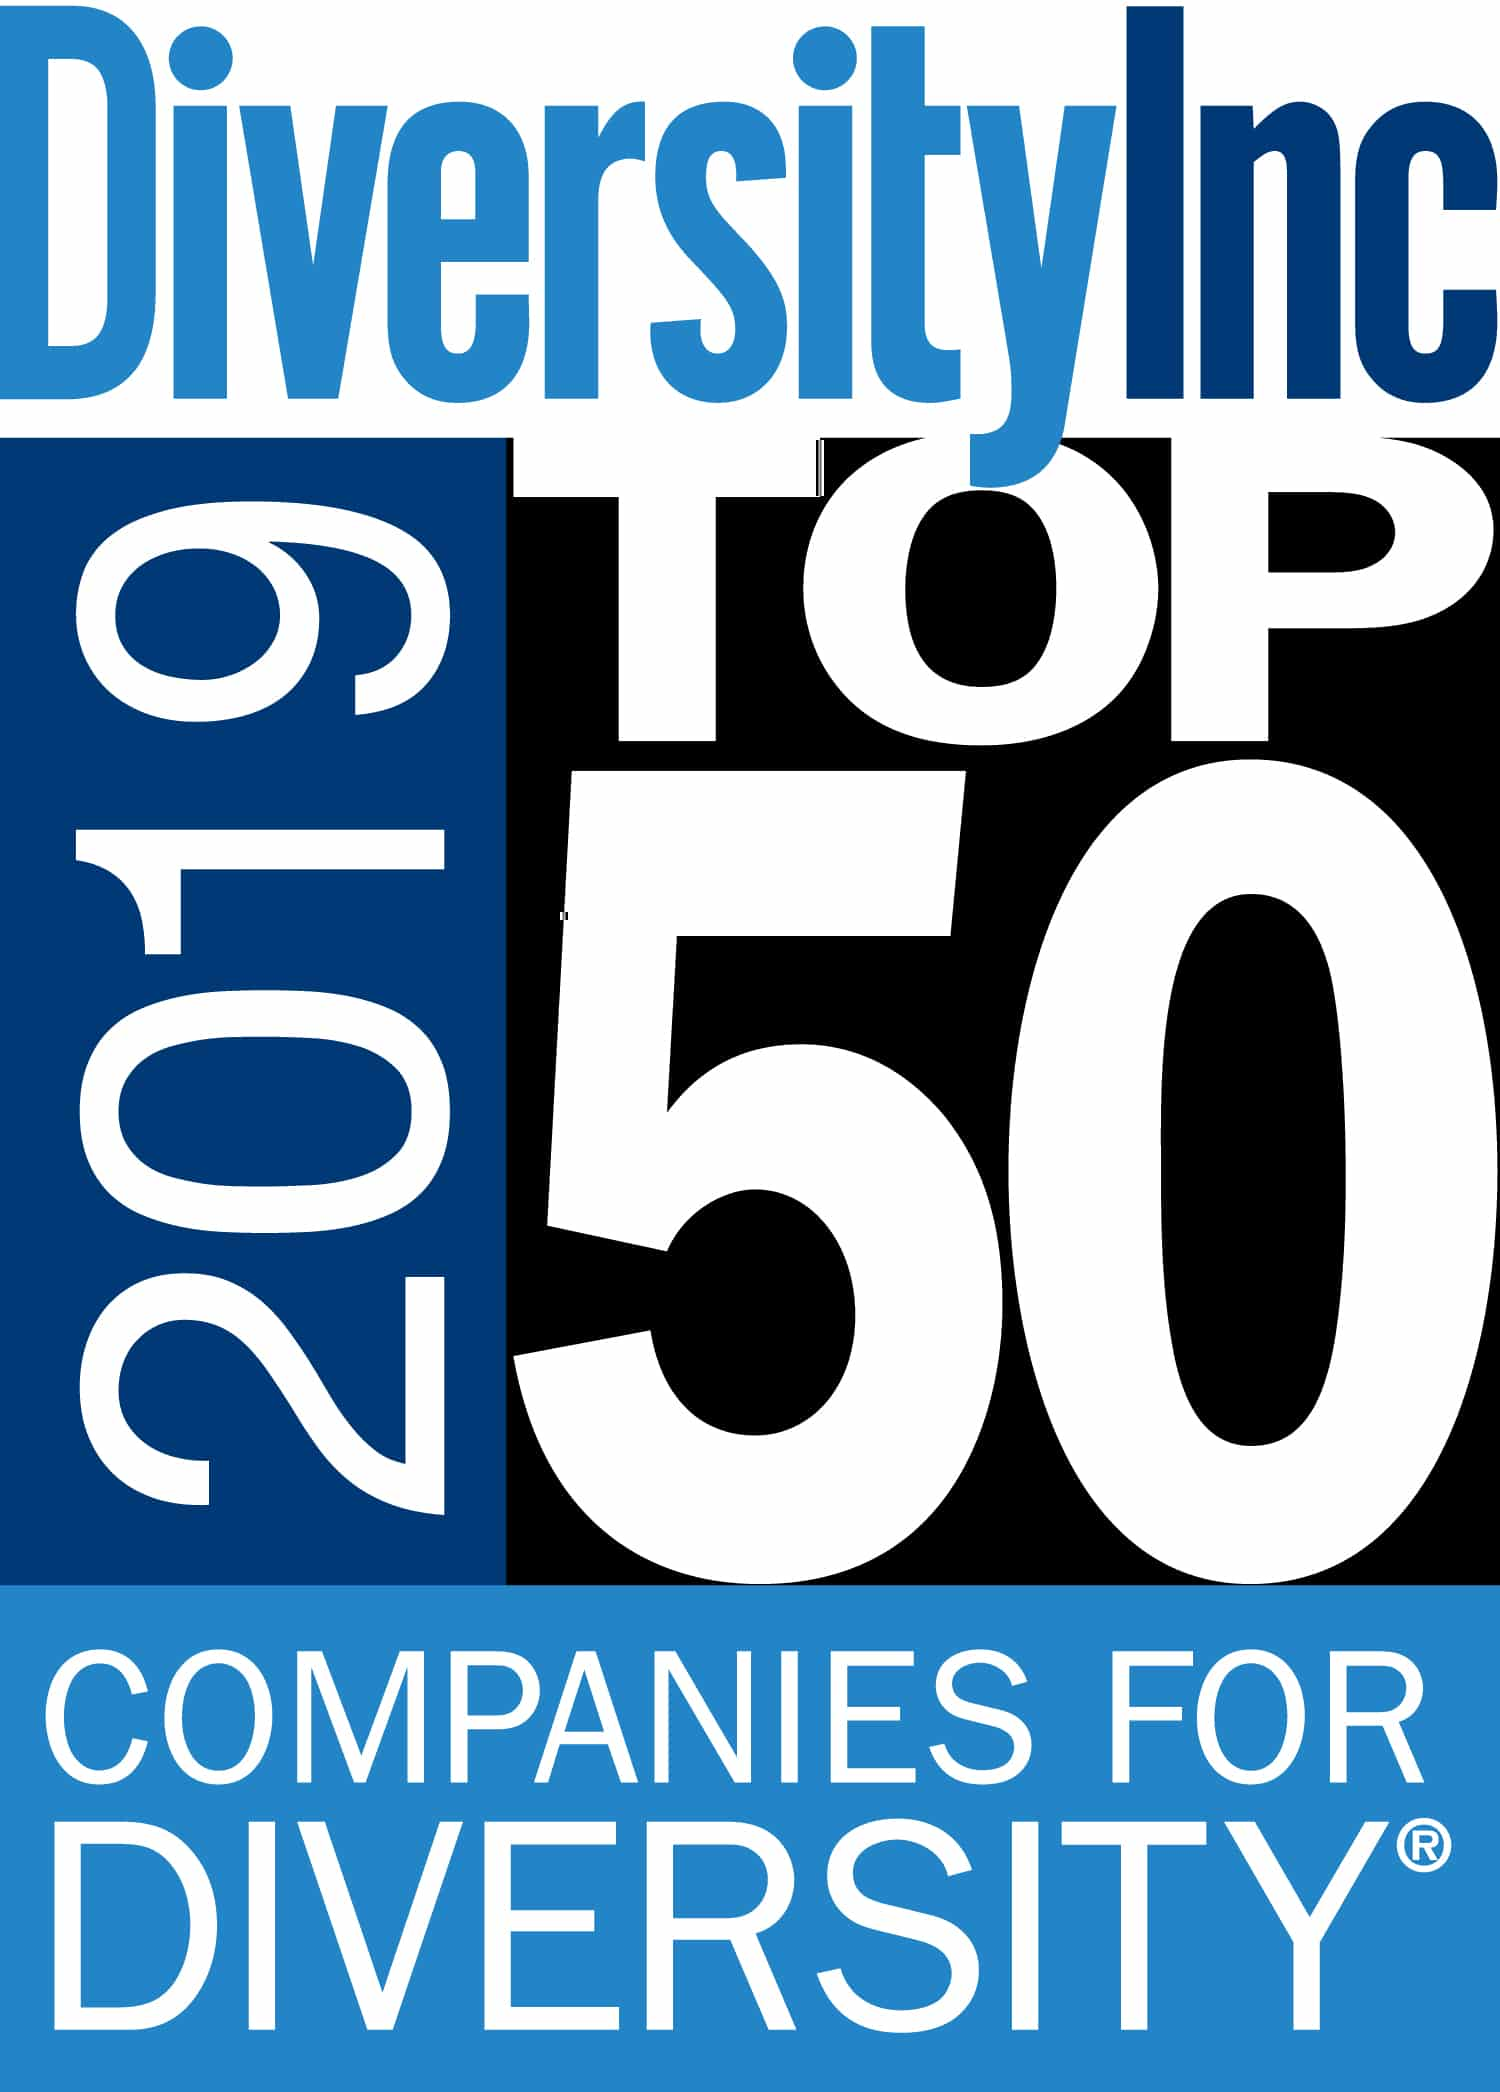 Diversity Inc award - 2019 Top 50 Companies for Diversity